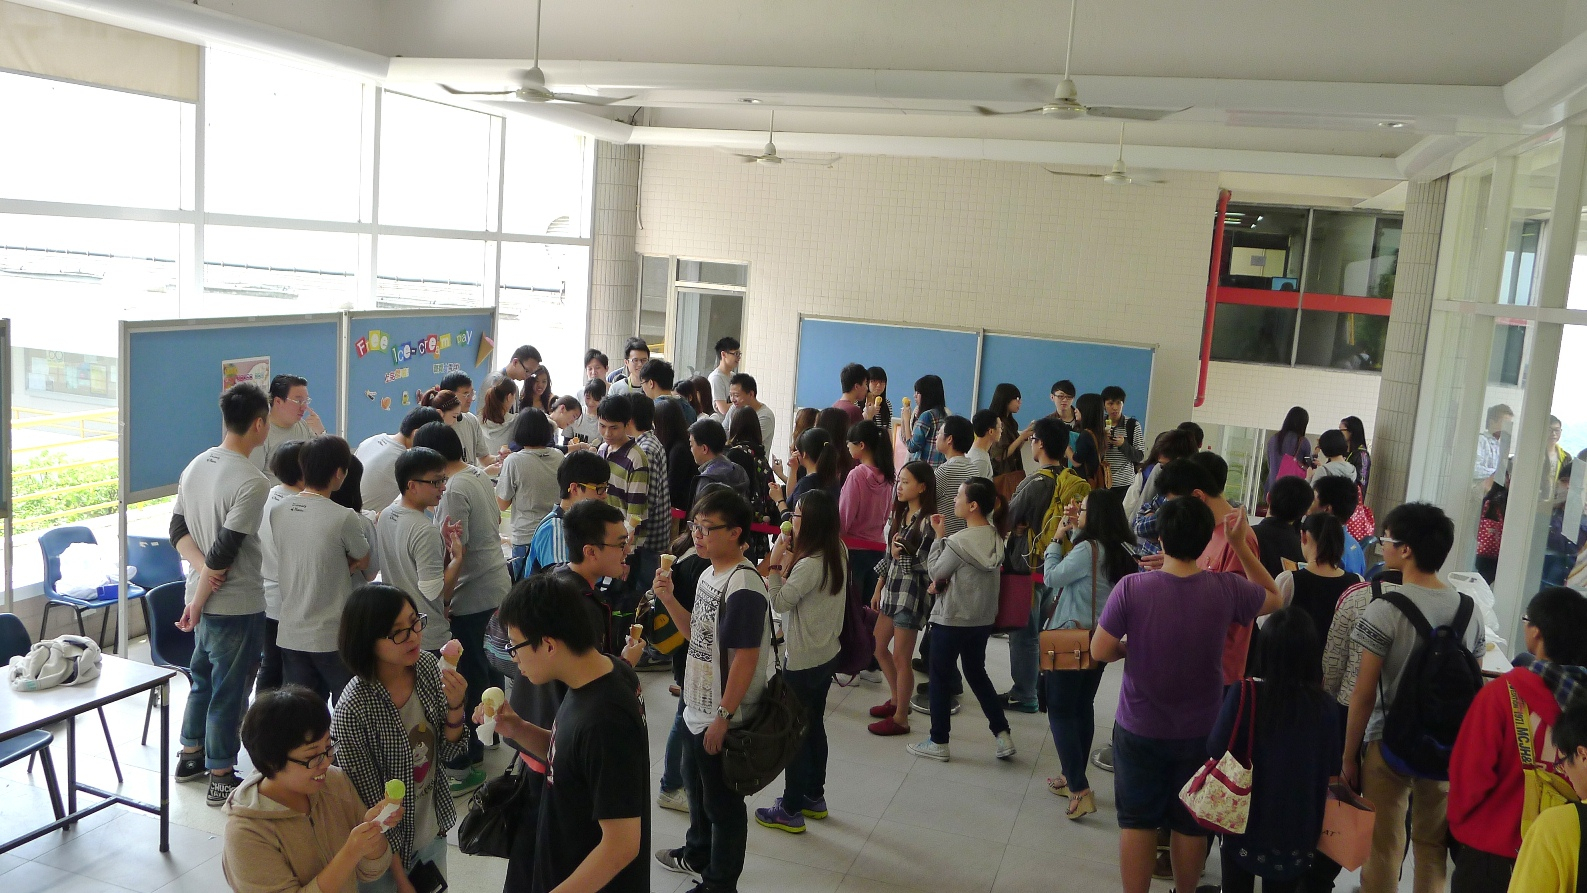 Over 200 students queue up for the free ice cream treat